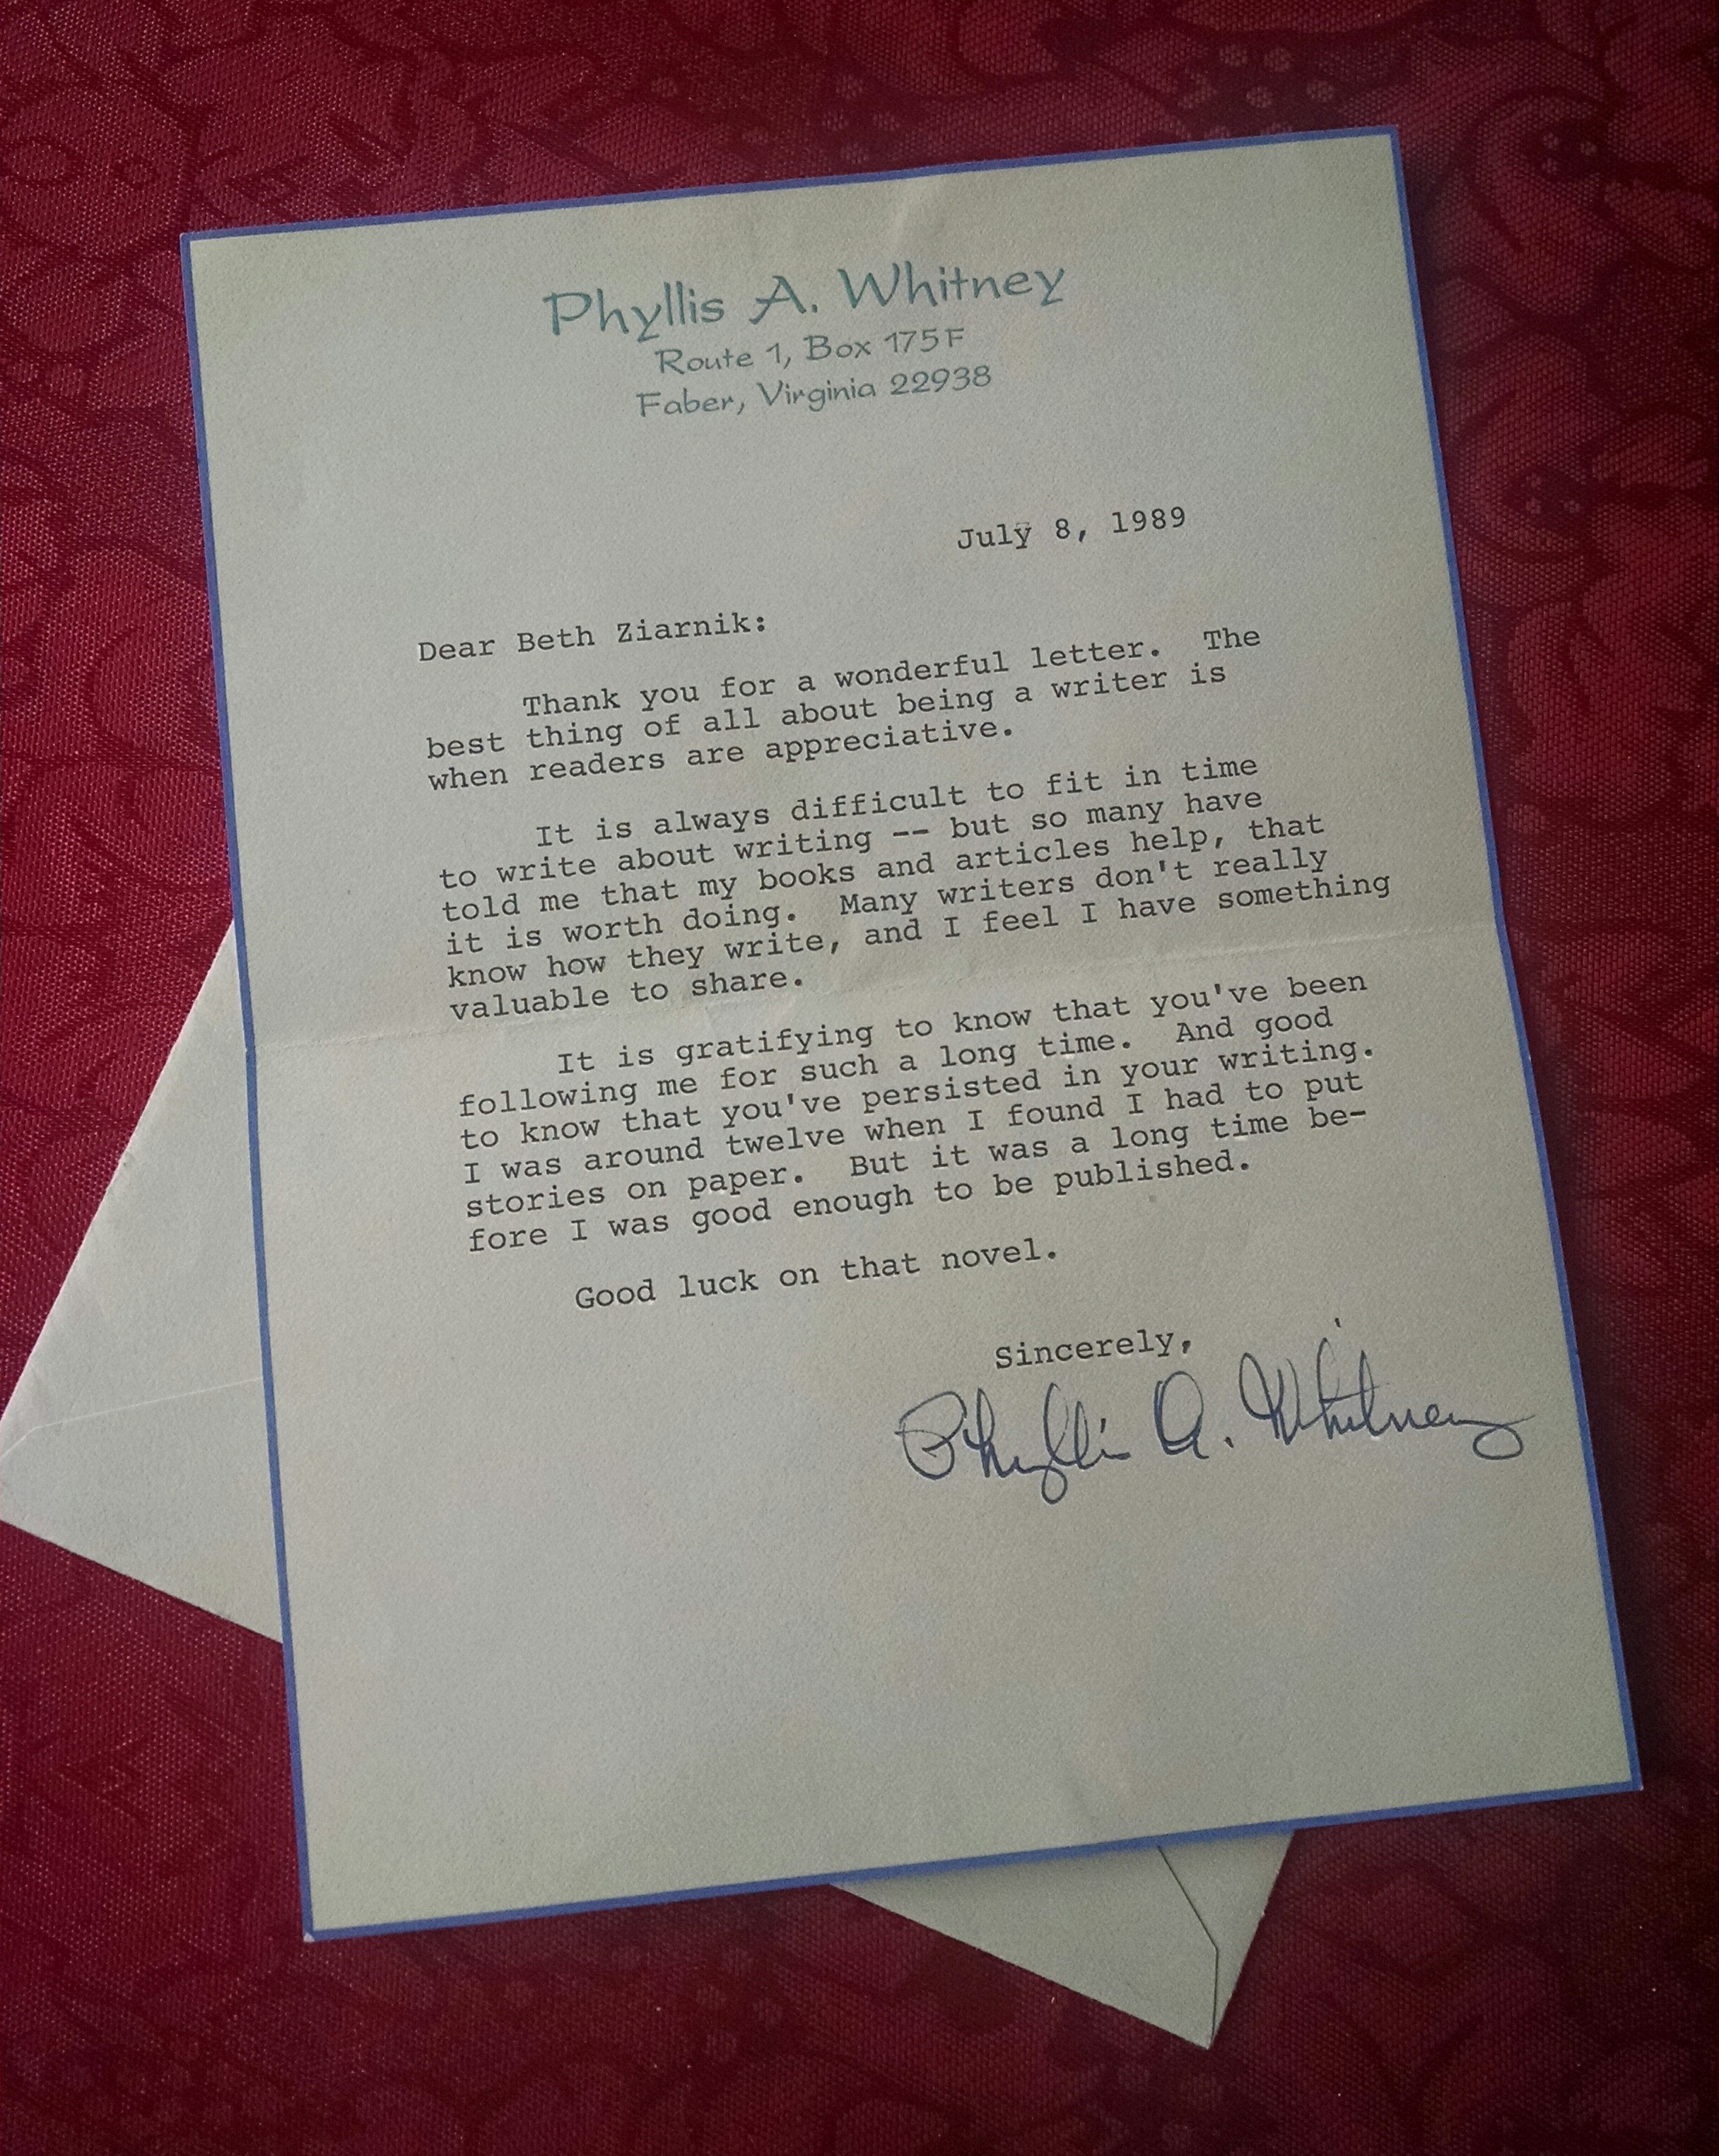 letter from Phyllis A Whitney to Beth Ann Ziarnik